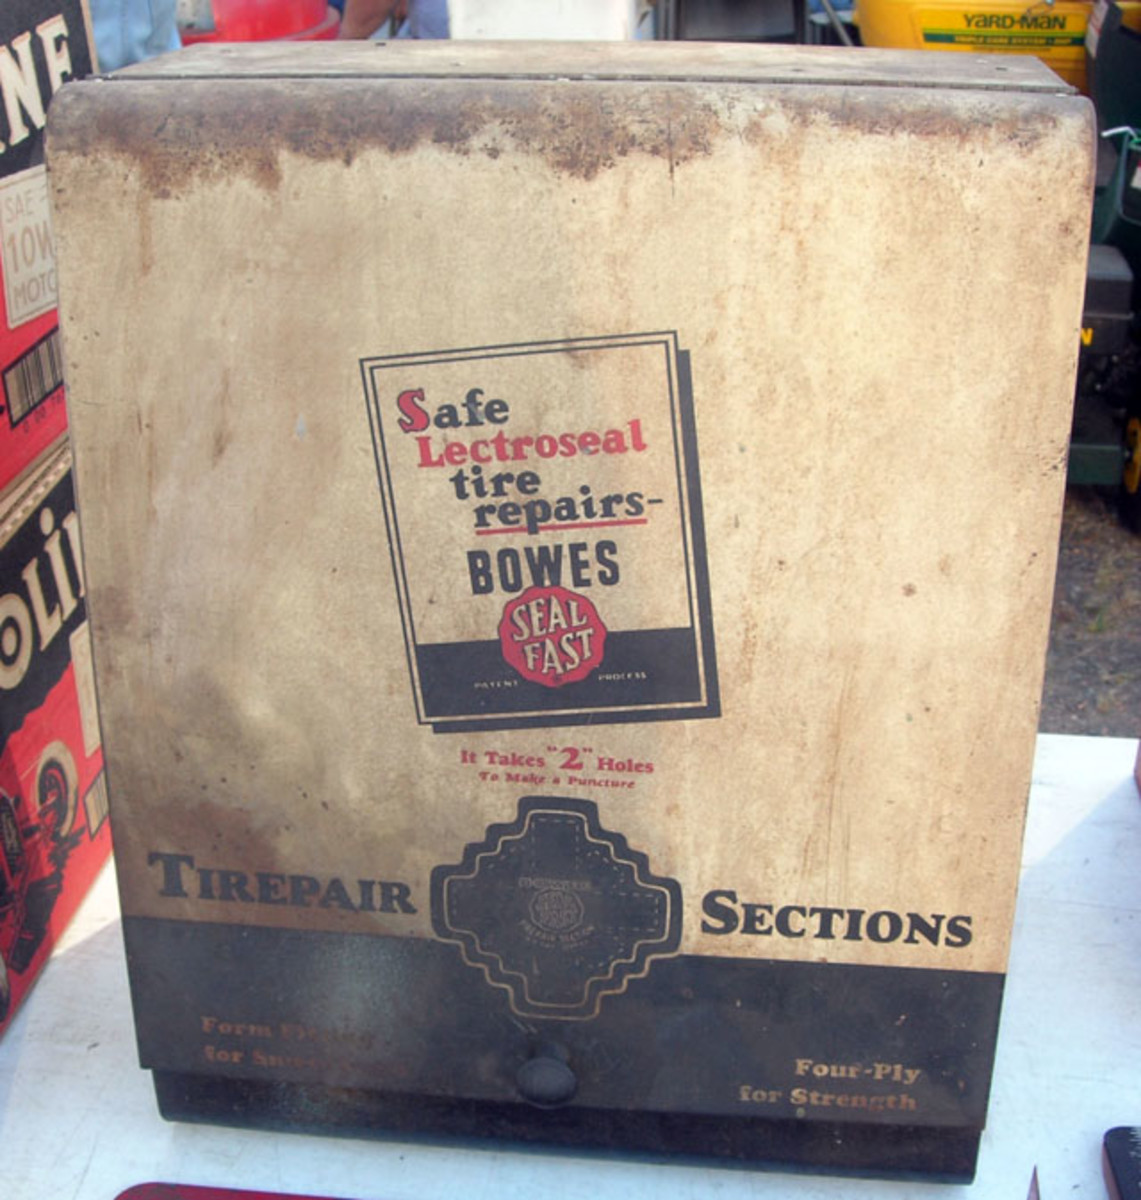 """Vintage Bowes Seal Fast """"Tirepair Sections"""" metal flip-front cabinet sold for $165."""